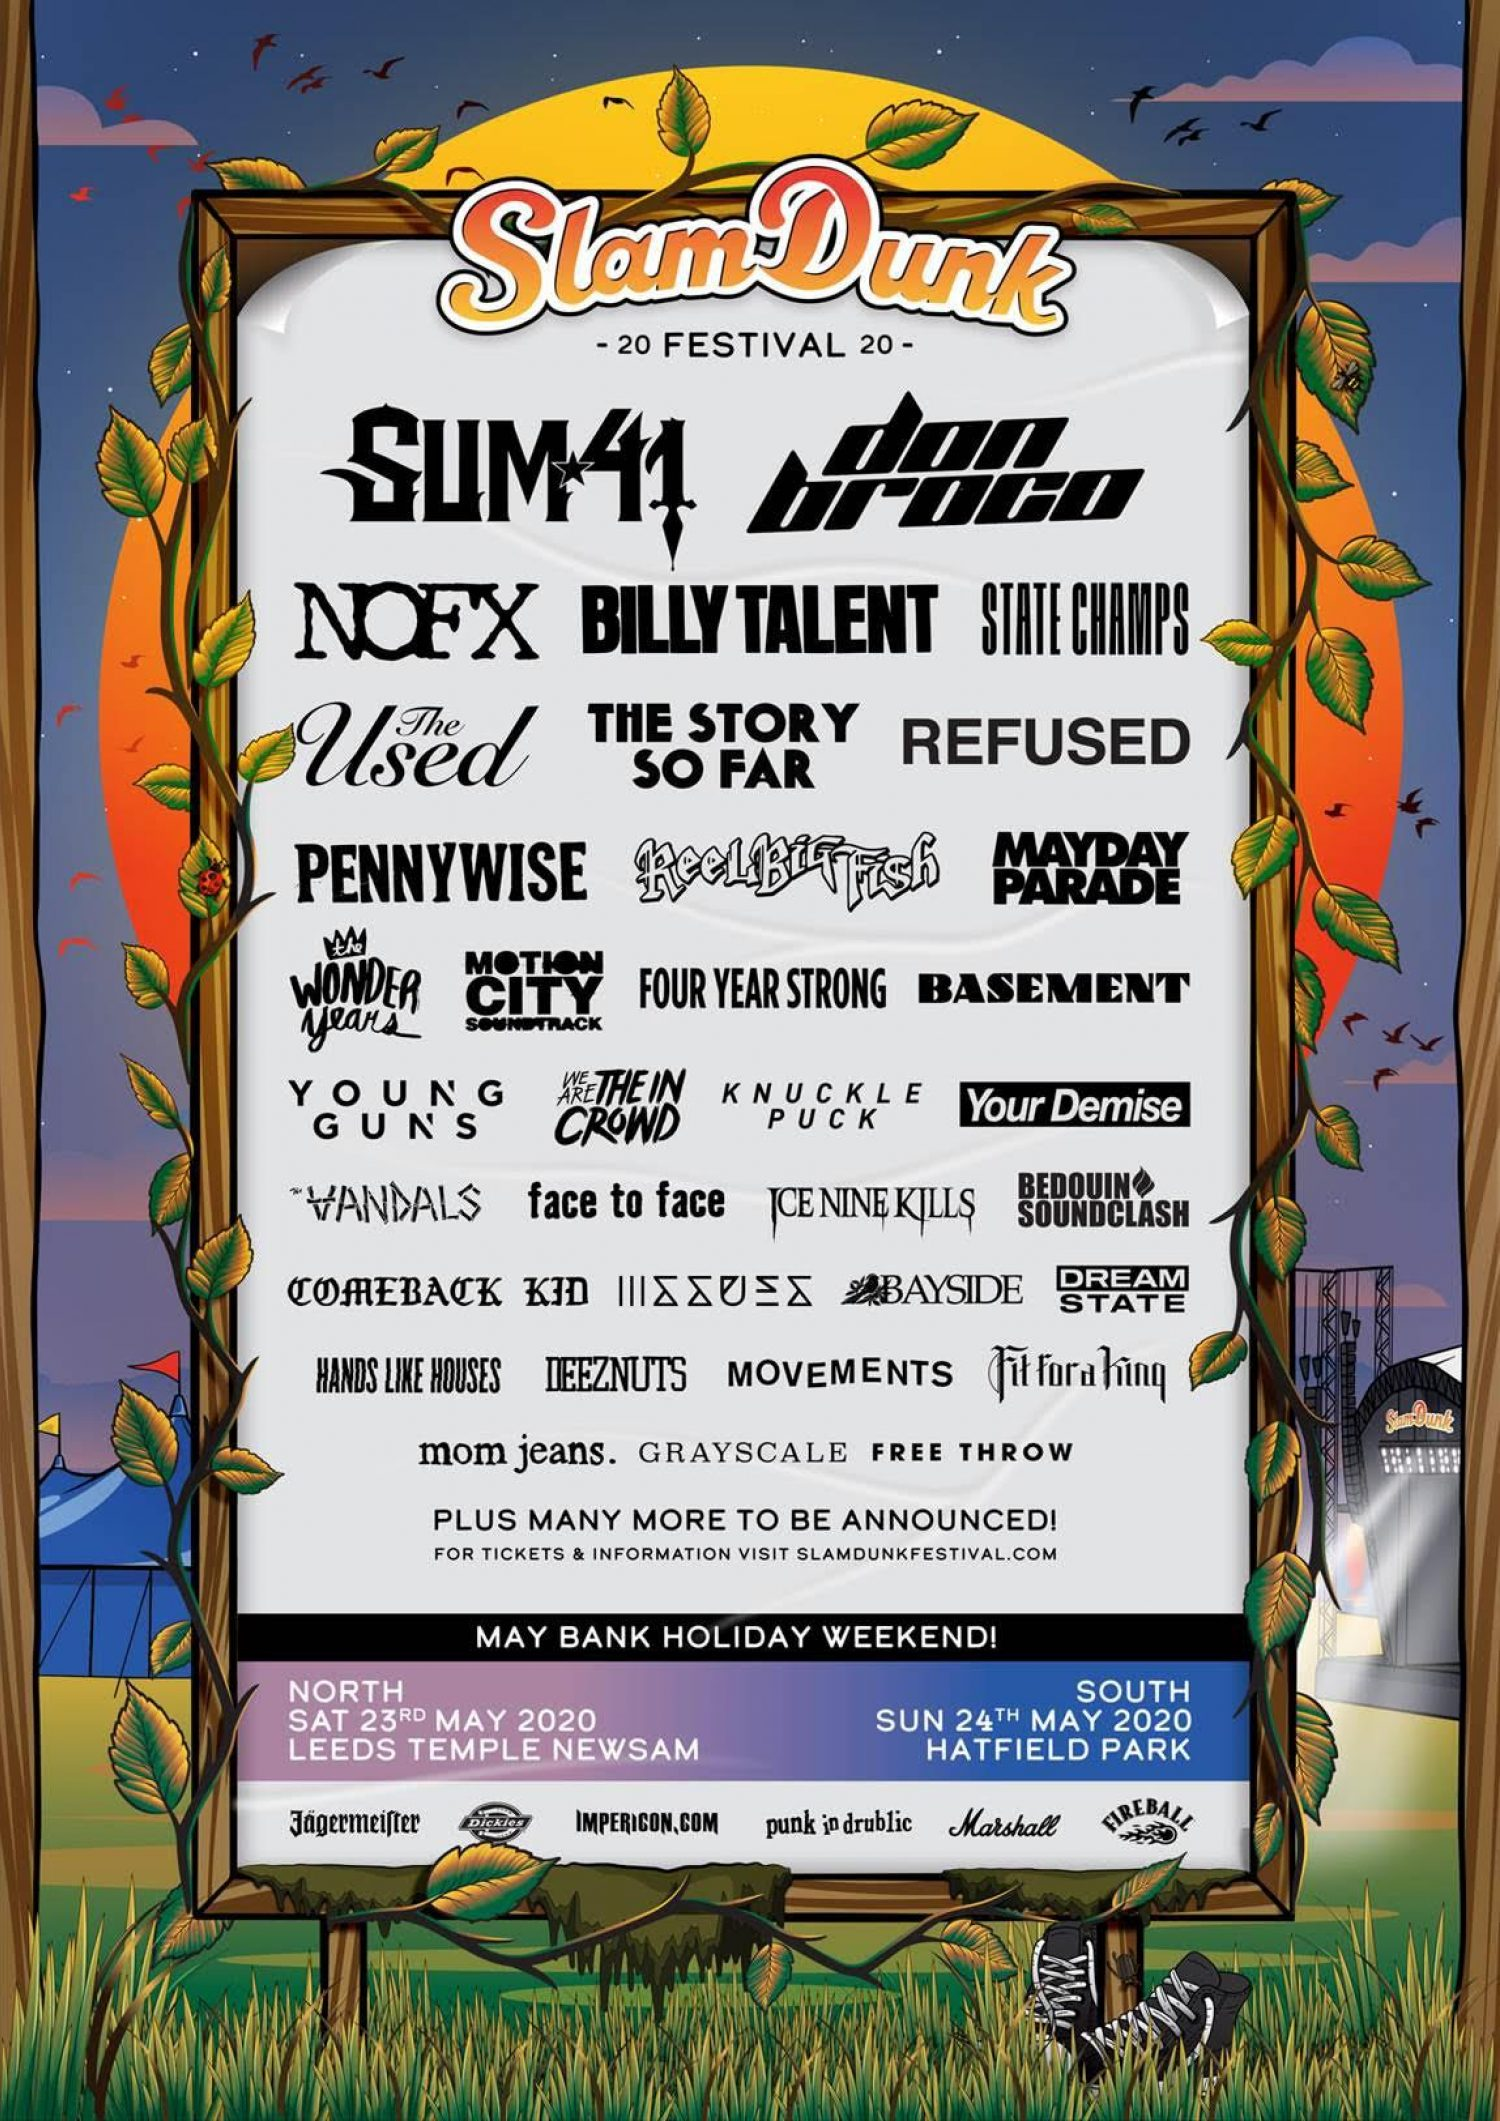 Slam Dunk has confirmed a load more bands, including Young Guns and Refused